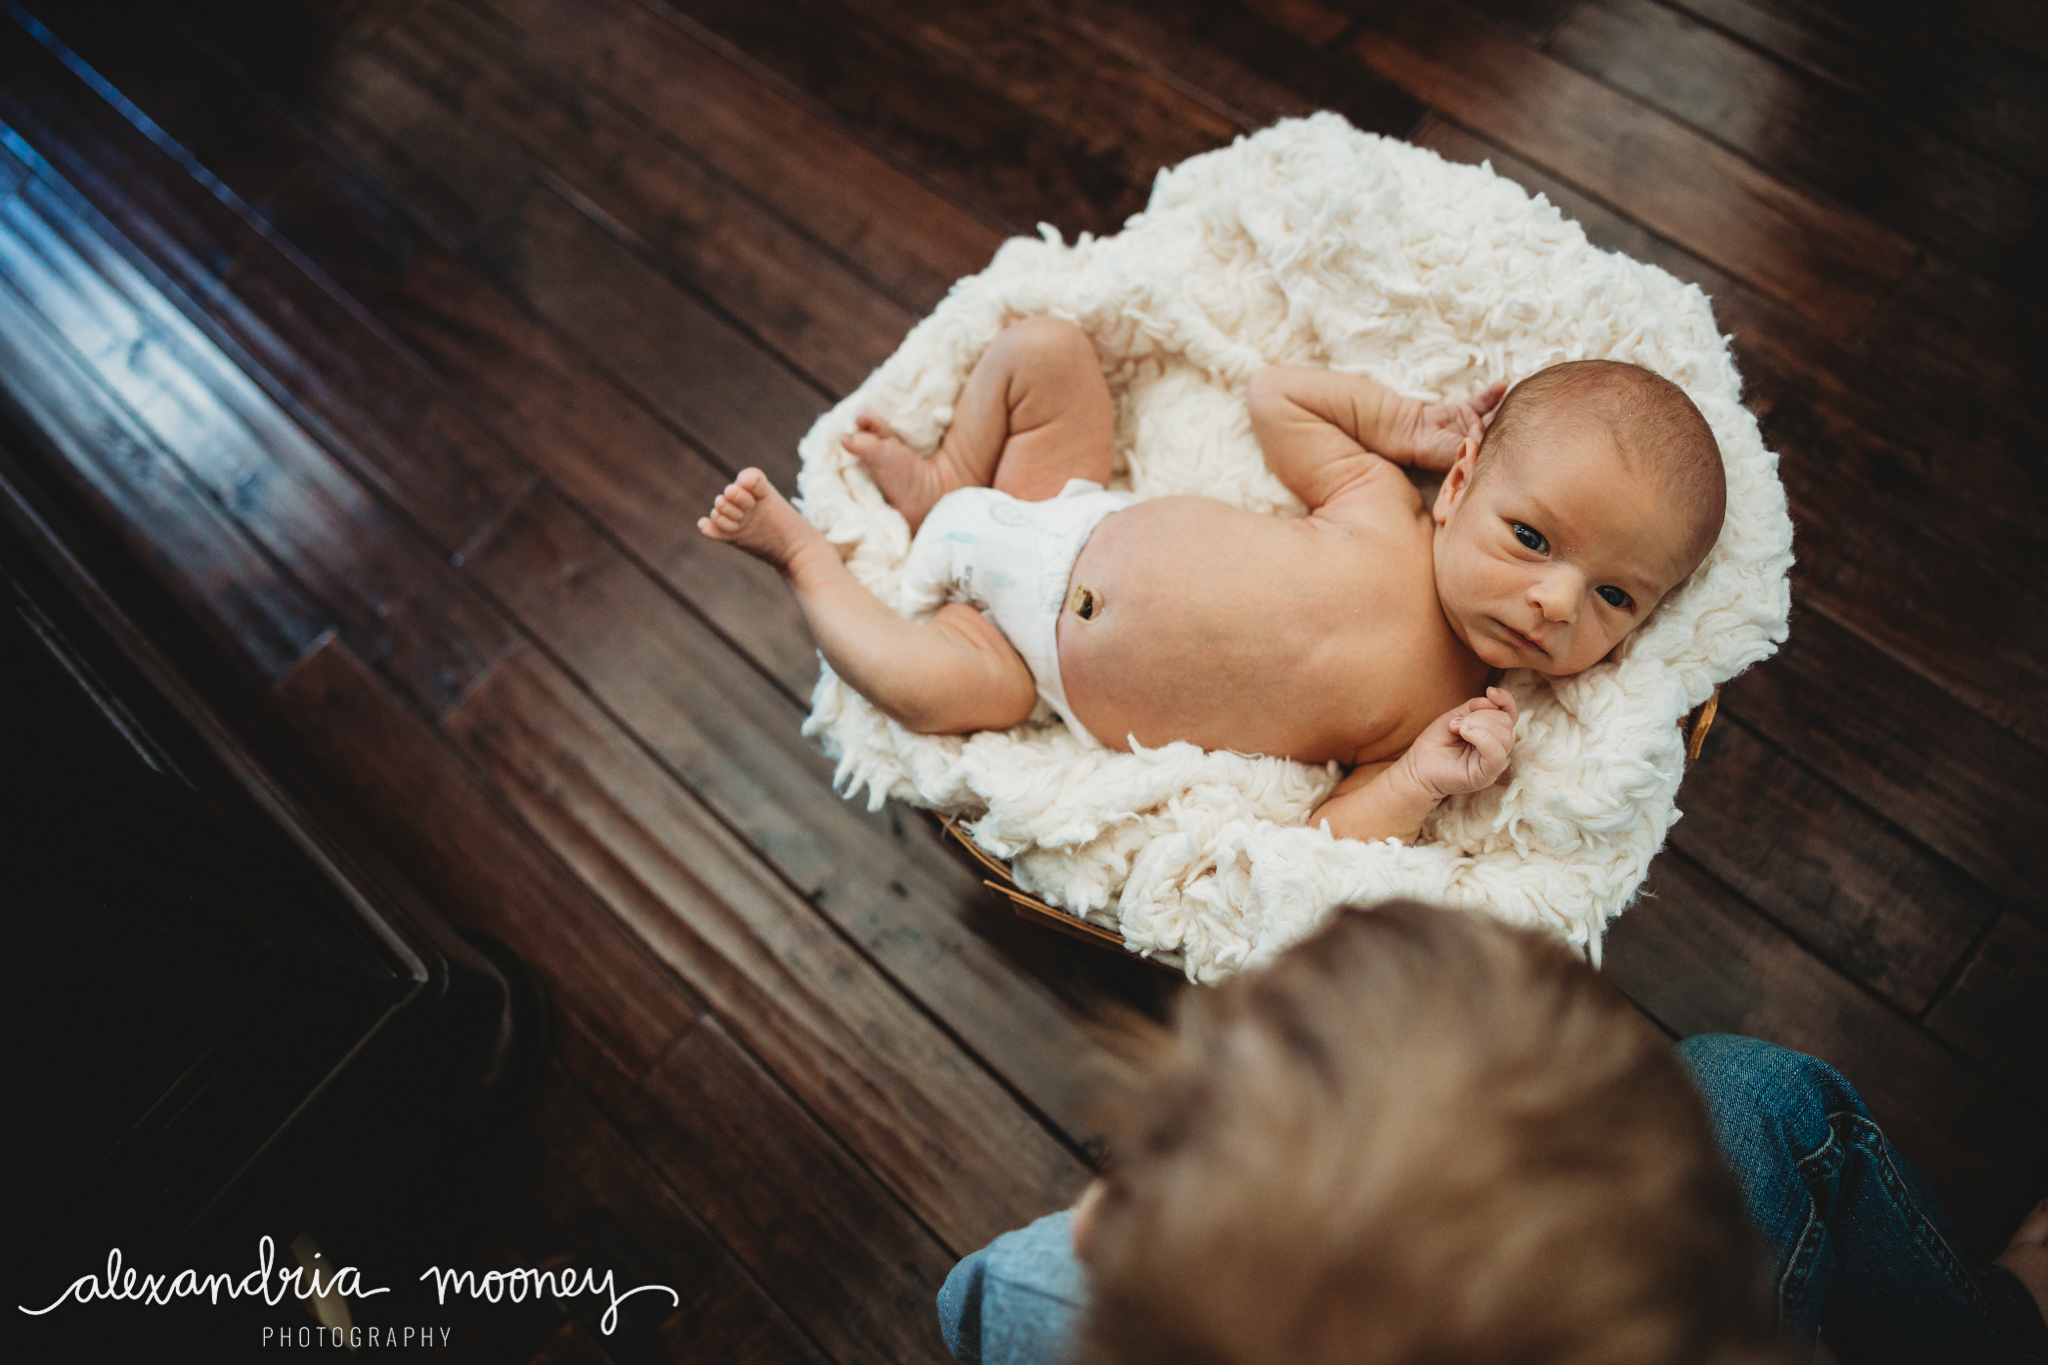 Emmett_Newborn_WATERMARKED-5.jpg